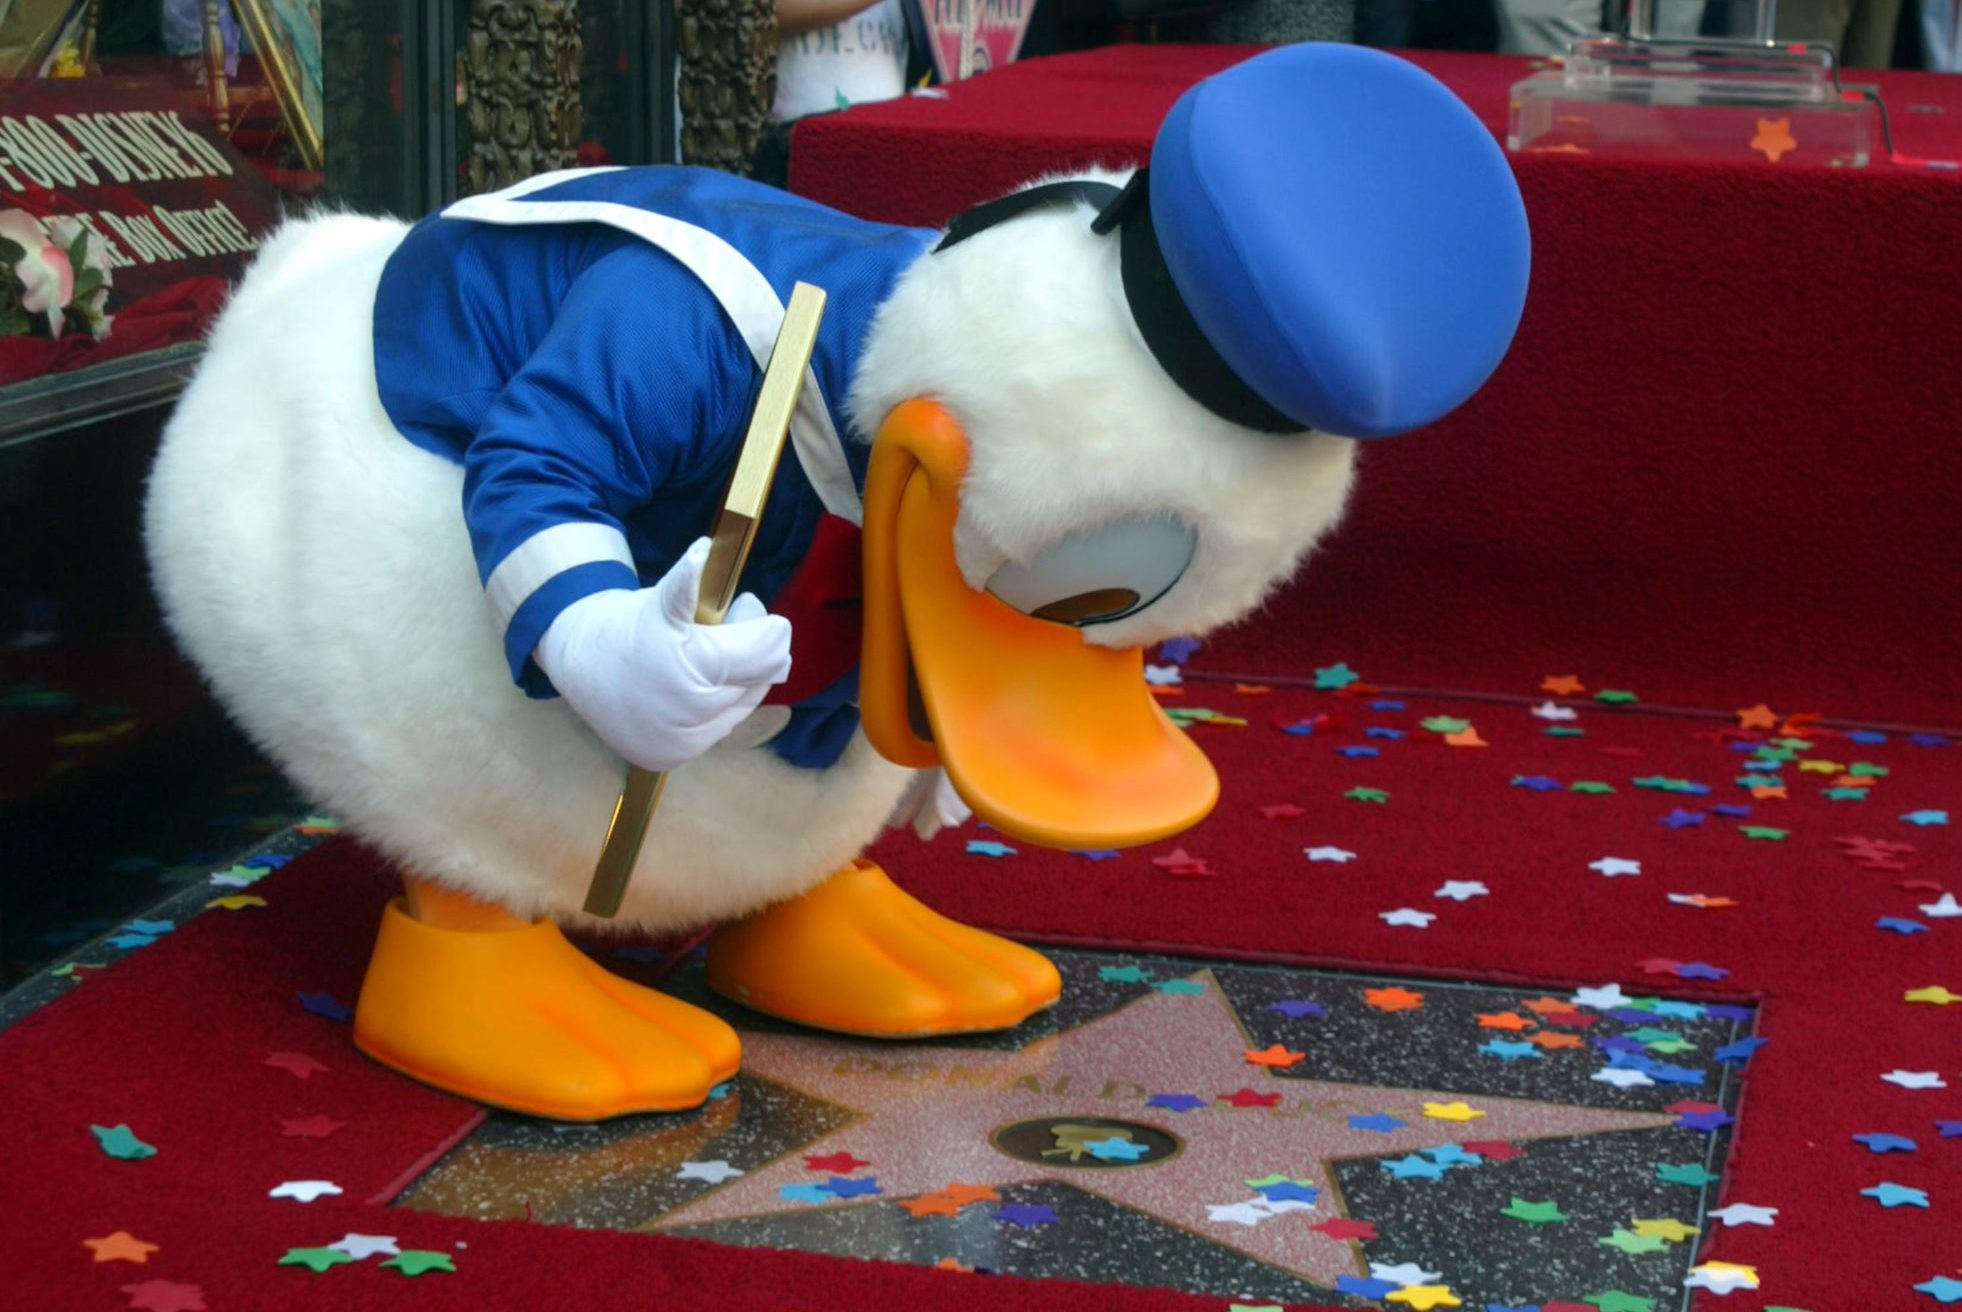 Donald Duck Honored with a Star on the Hollywood Walk of Fame for His Achievements in Film